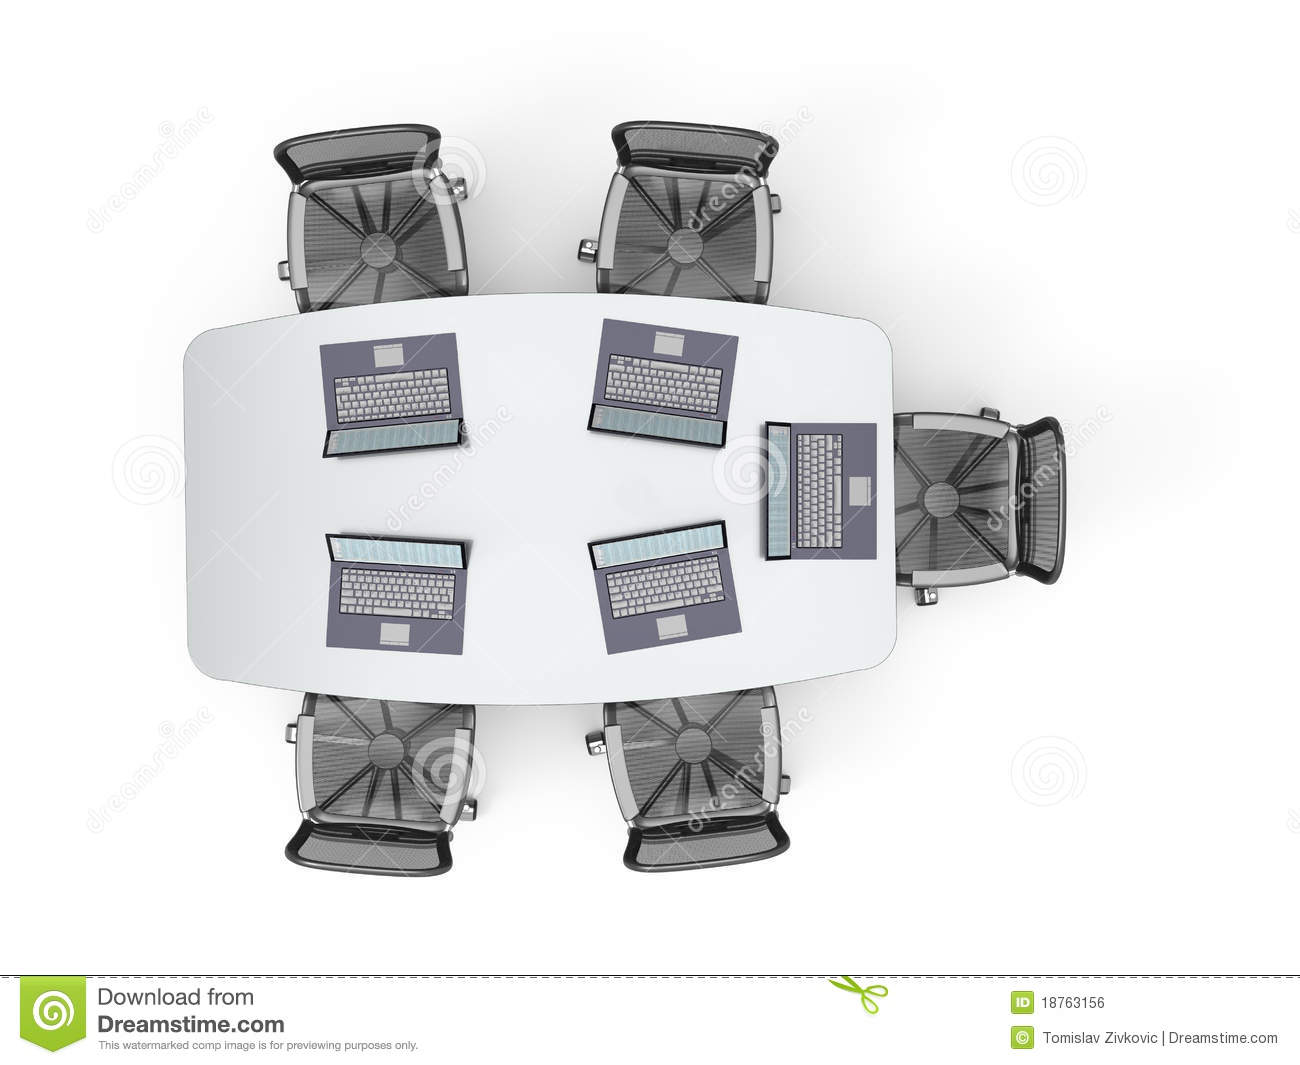 Conference Table With Laptops Royalty Free Stock Image